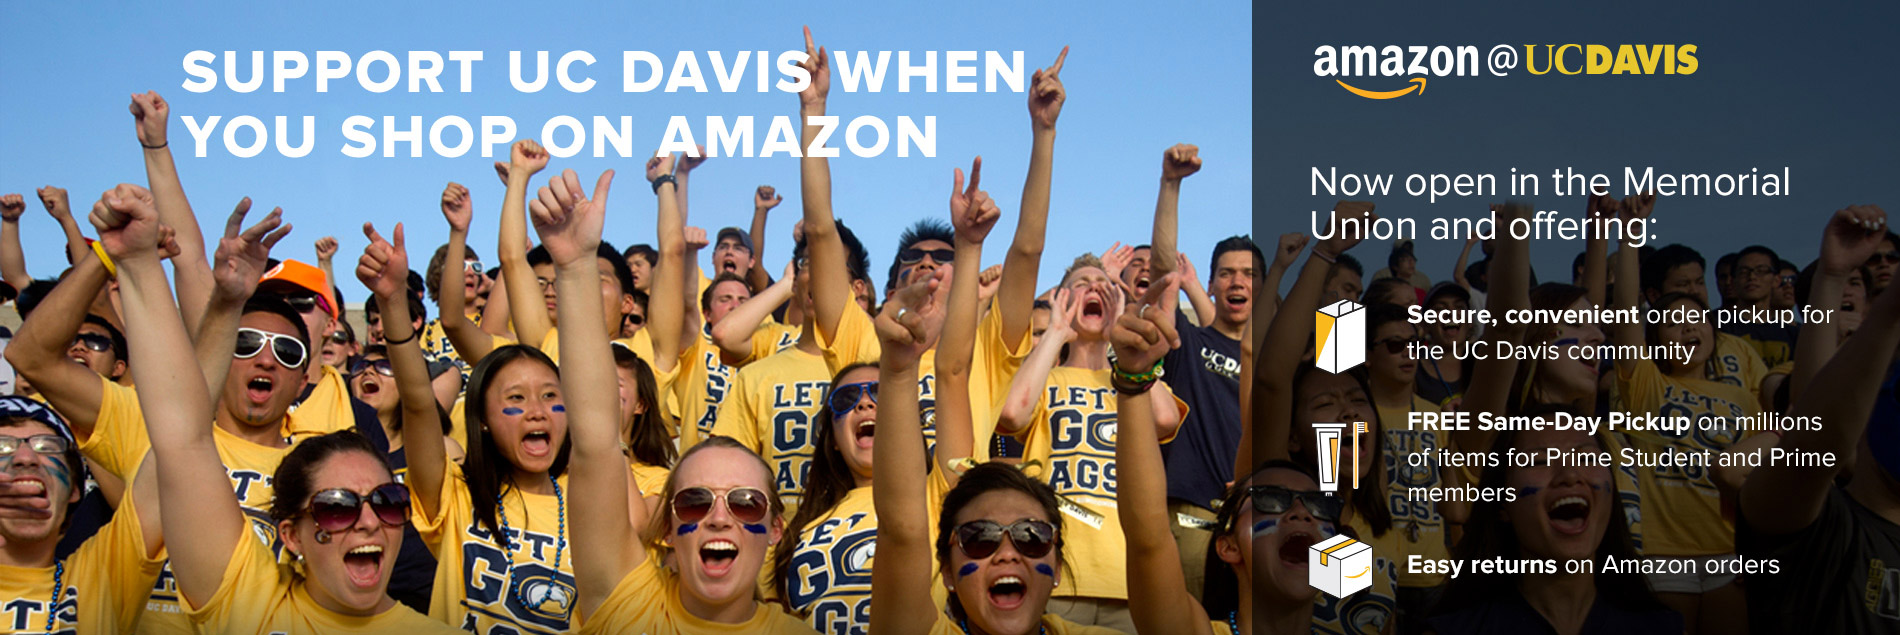 If you can't find it at the UC Davis Stores, find it at Amazon!